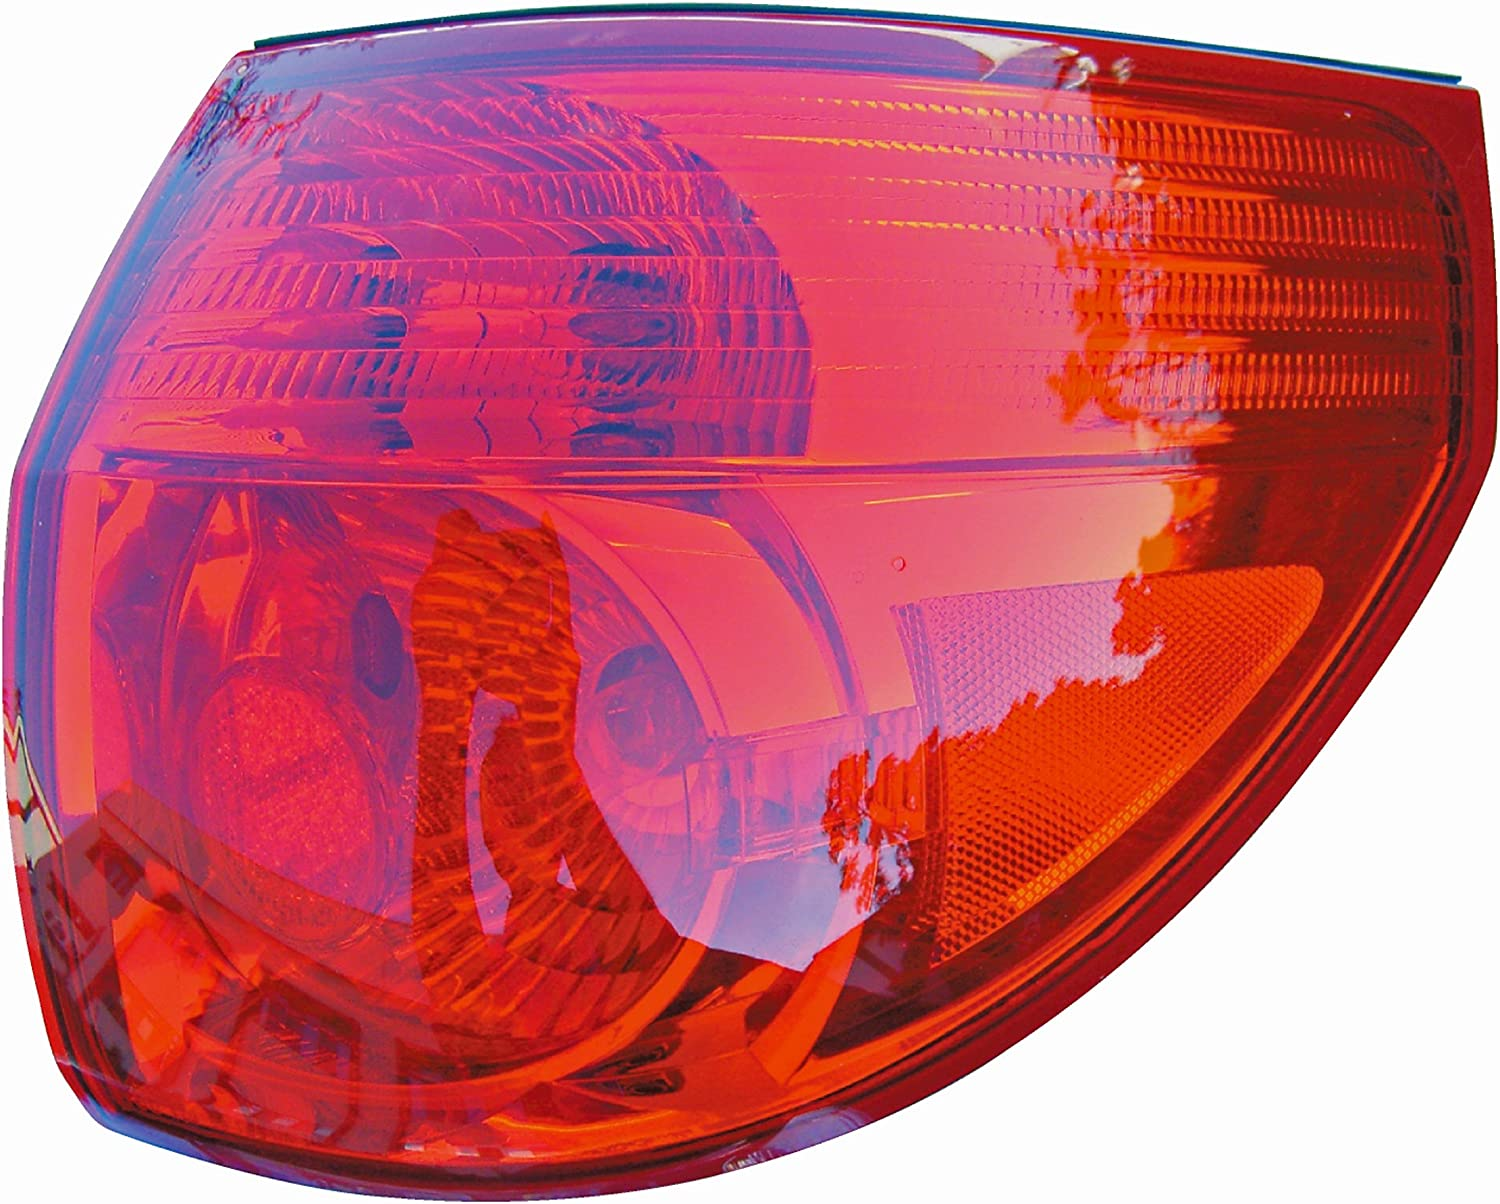 Dorman 1611529 Passenger Side Tail Light Assembly for Select Toyota Models